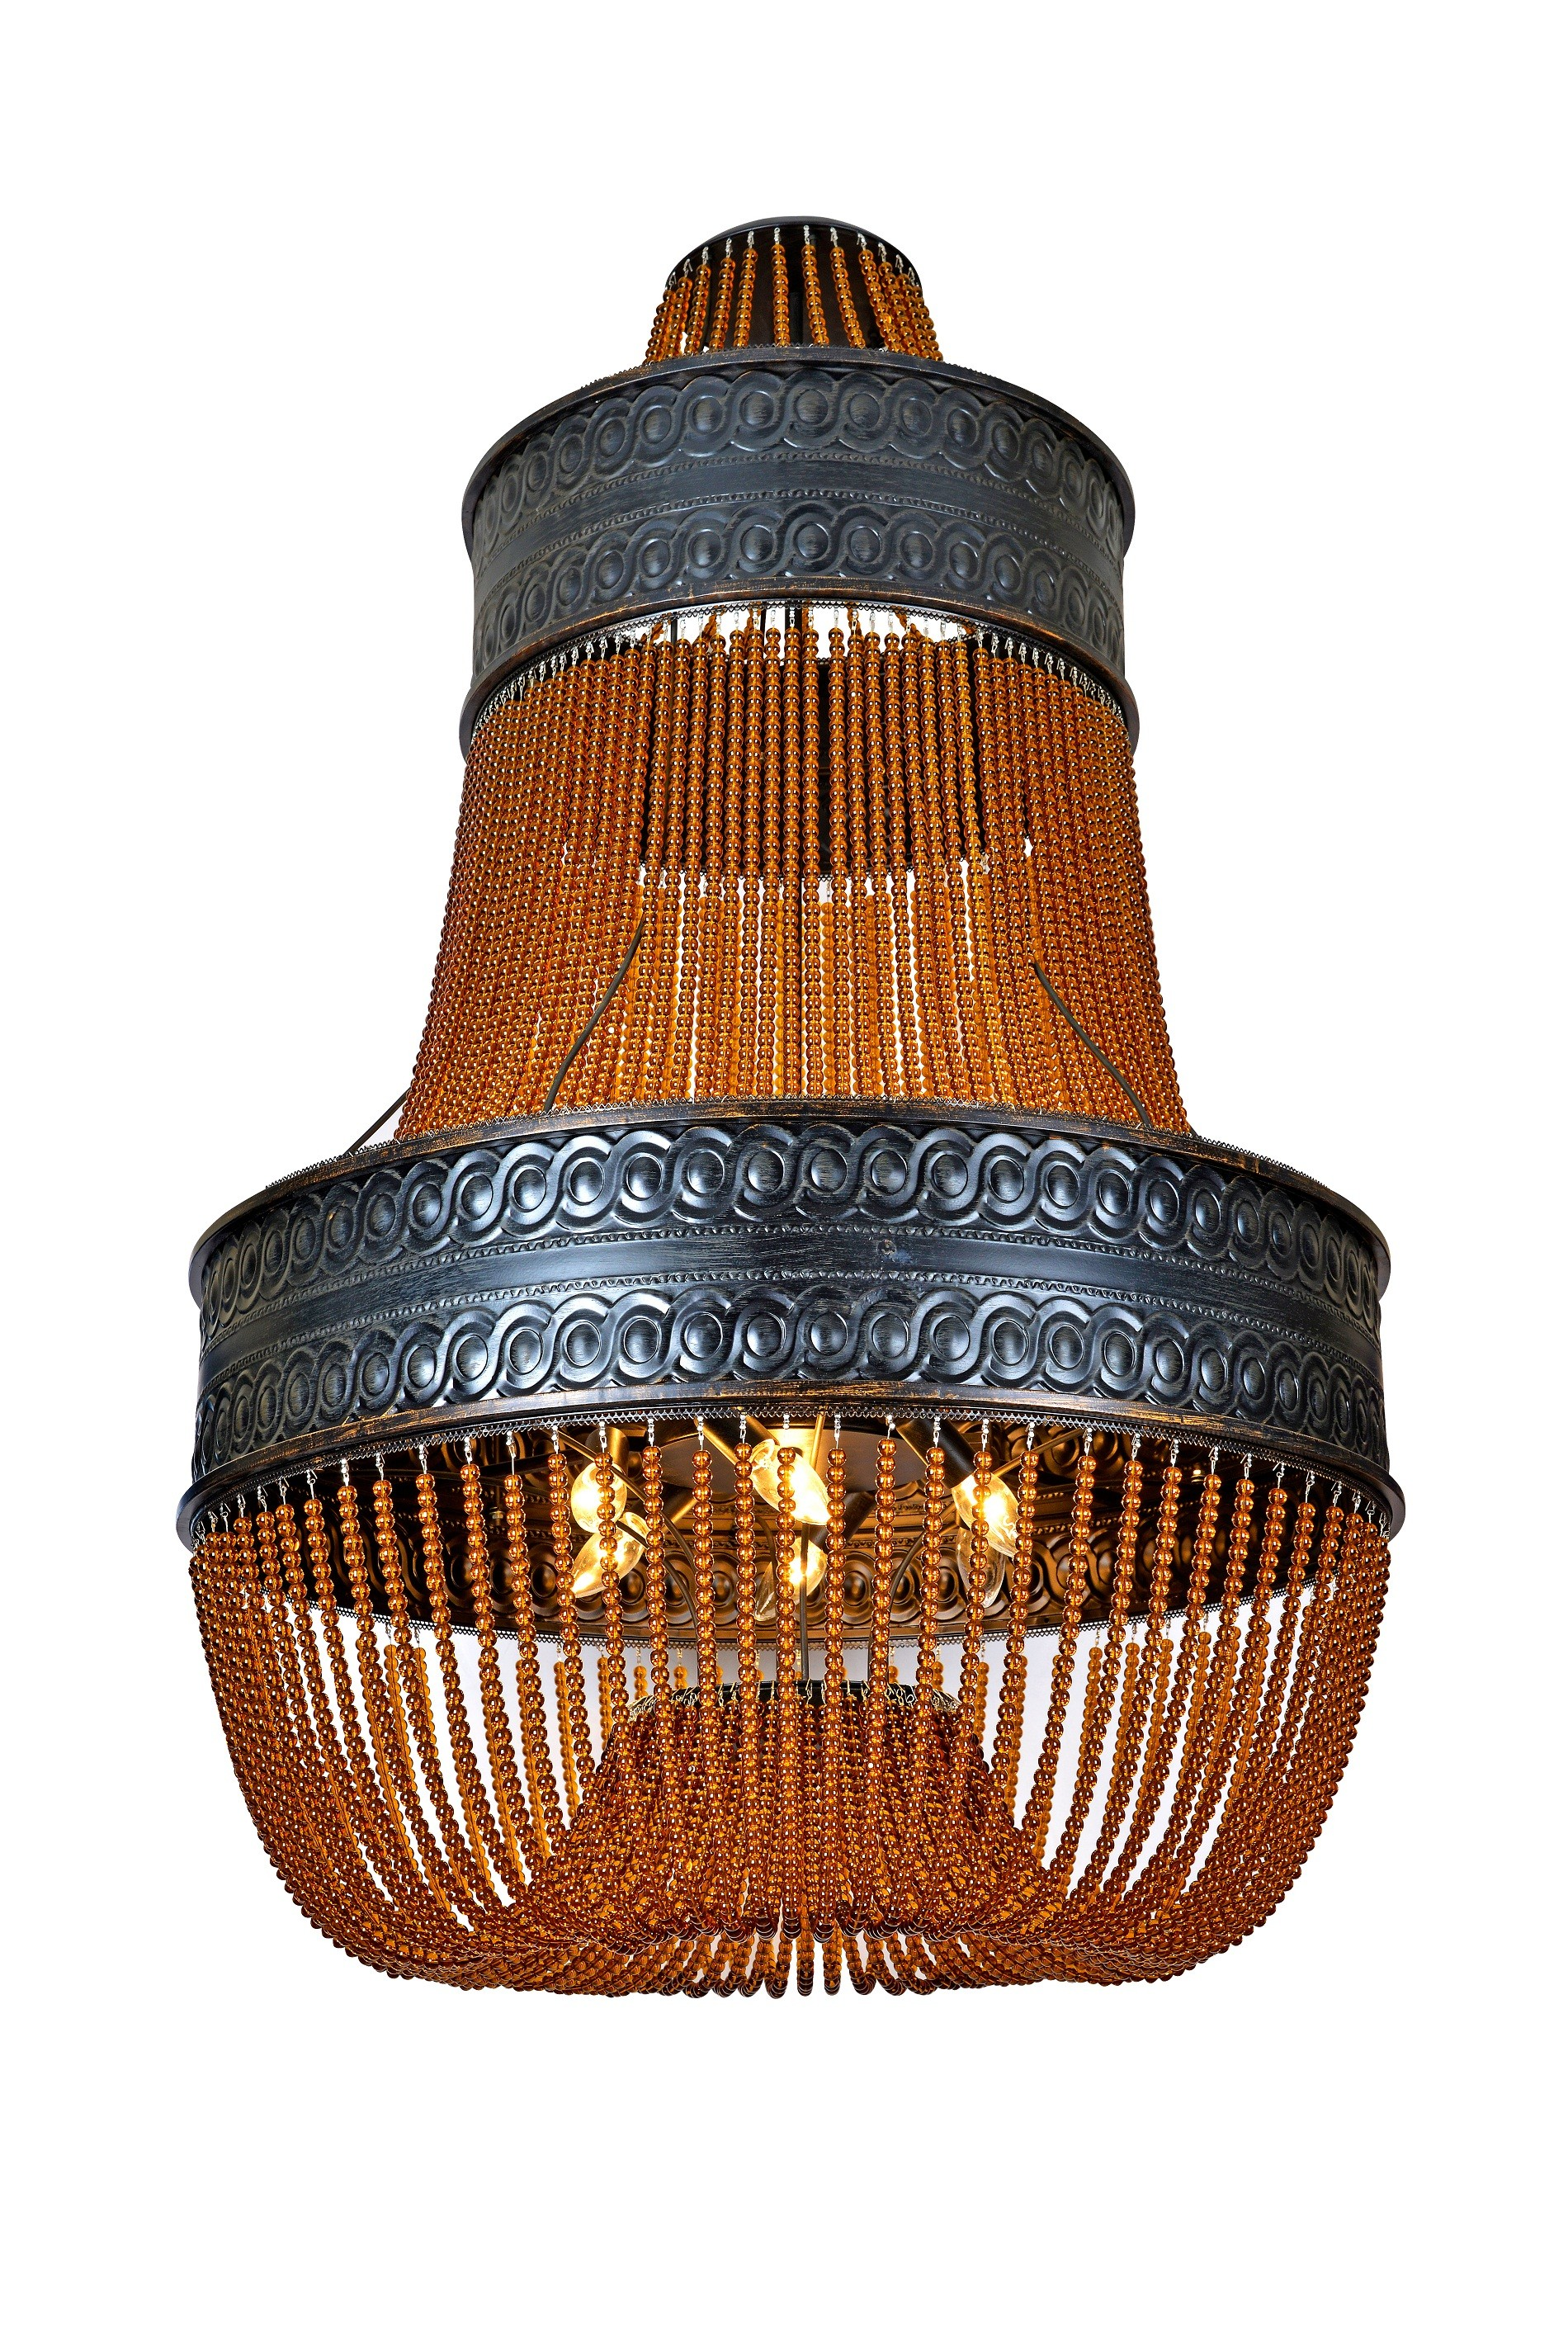 Empress xiaoming 12 light imperial oriental amber crystal oversize empress xiaoming 12 light imperial oriental amber crystal oversize chandelier 33wx50h aloadofball Gallery